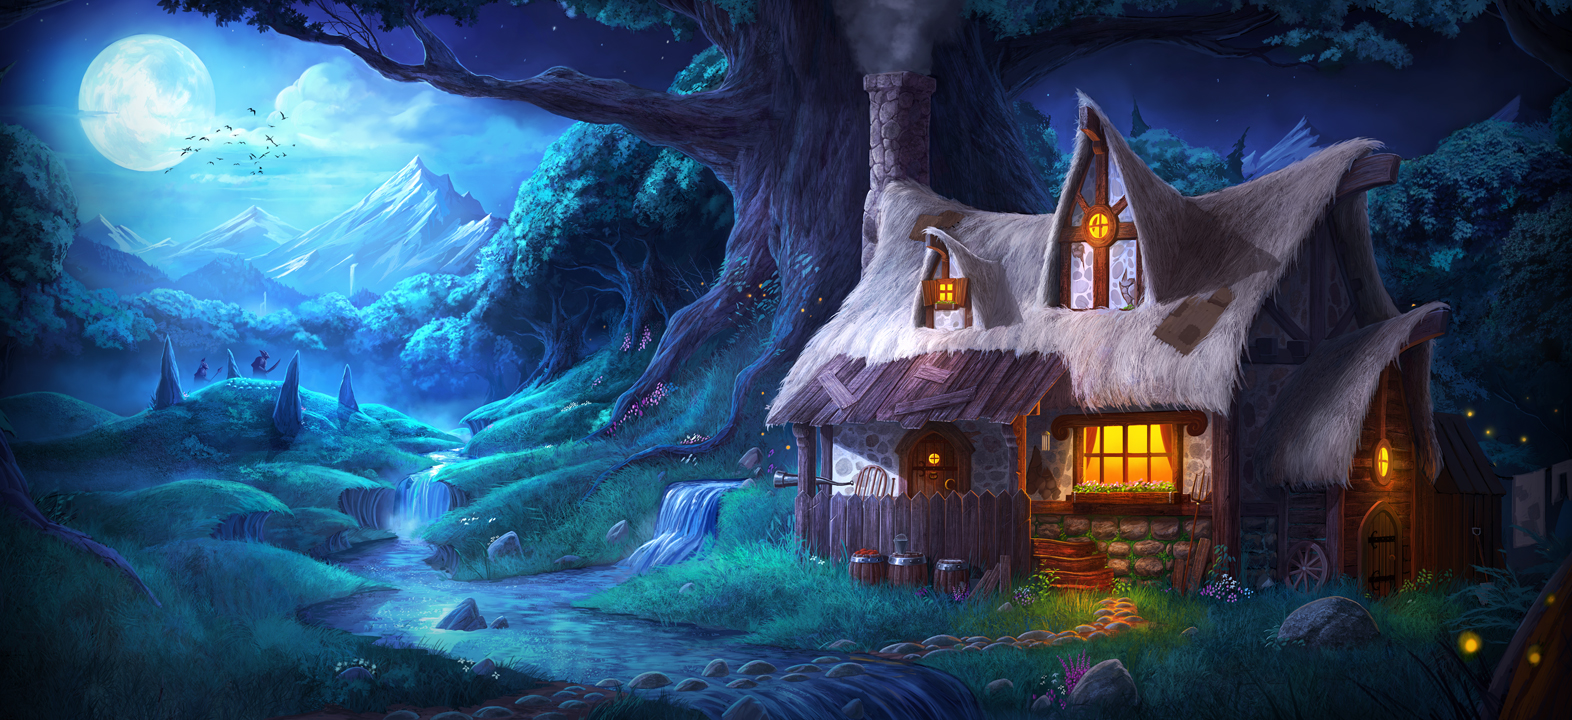 Trine-2-DC-Europe-Concept-Forest